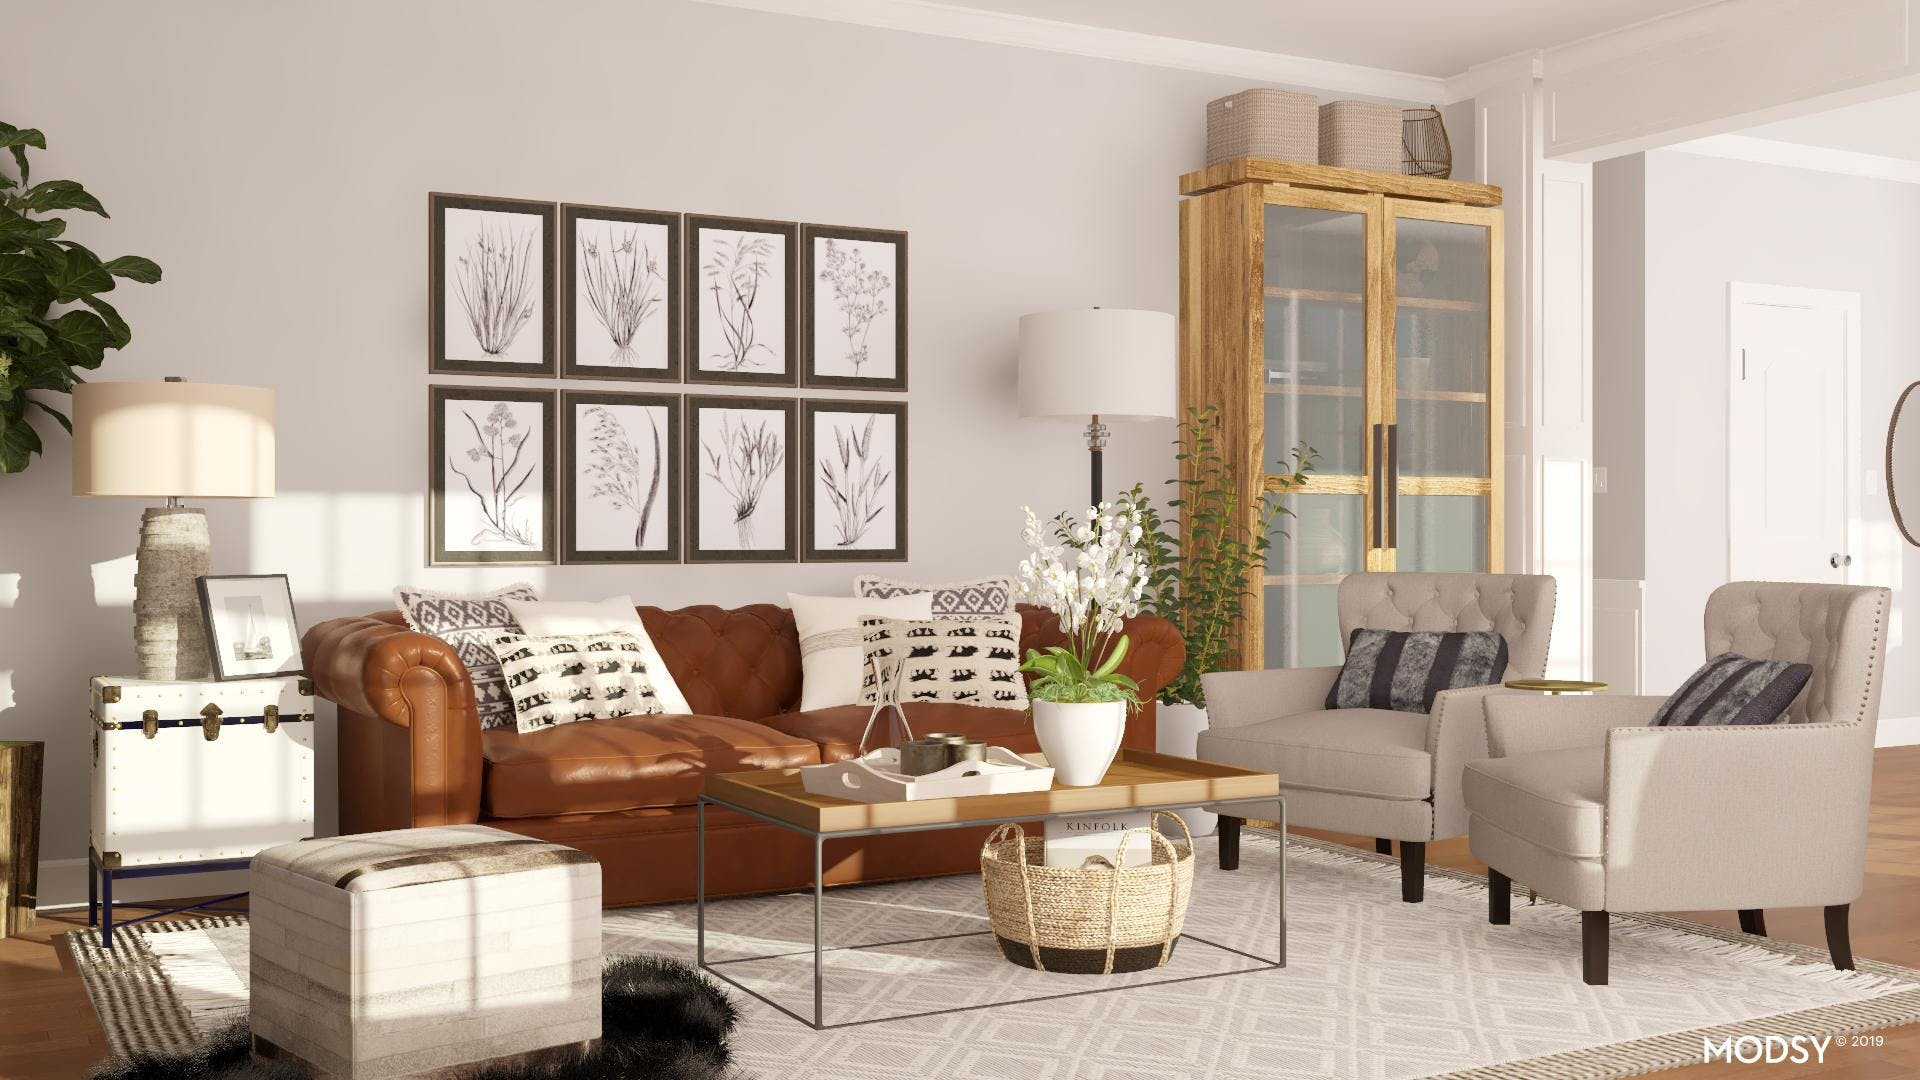 Leather Sofas In A Rustic Living Room